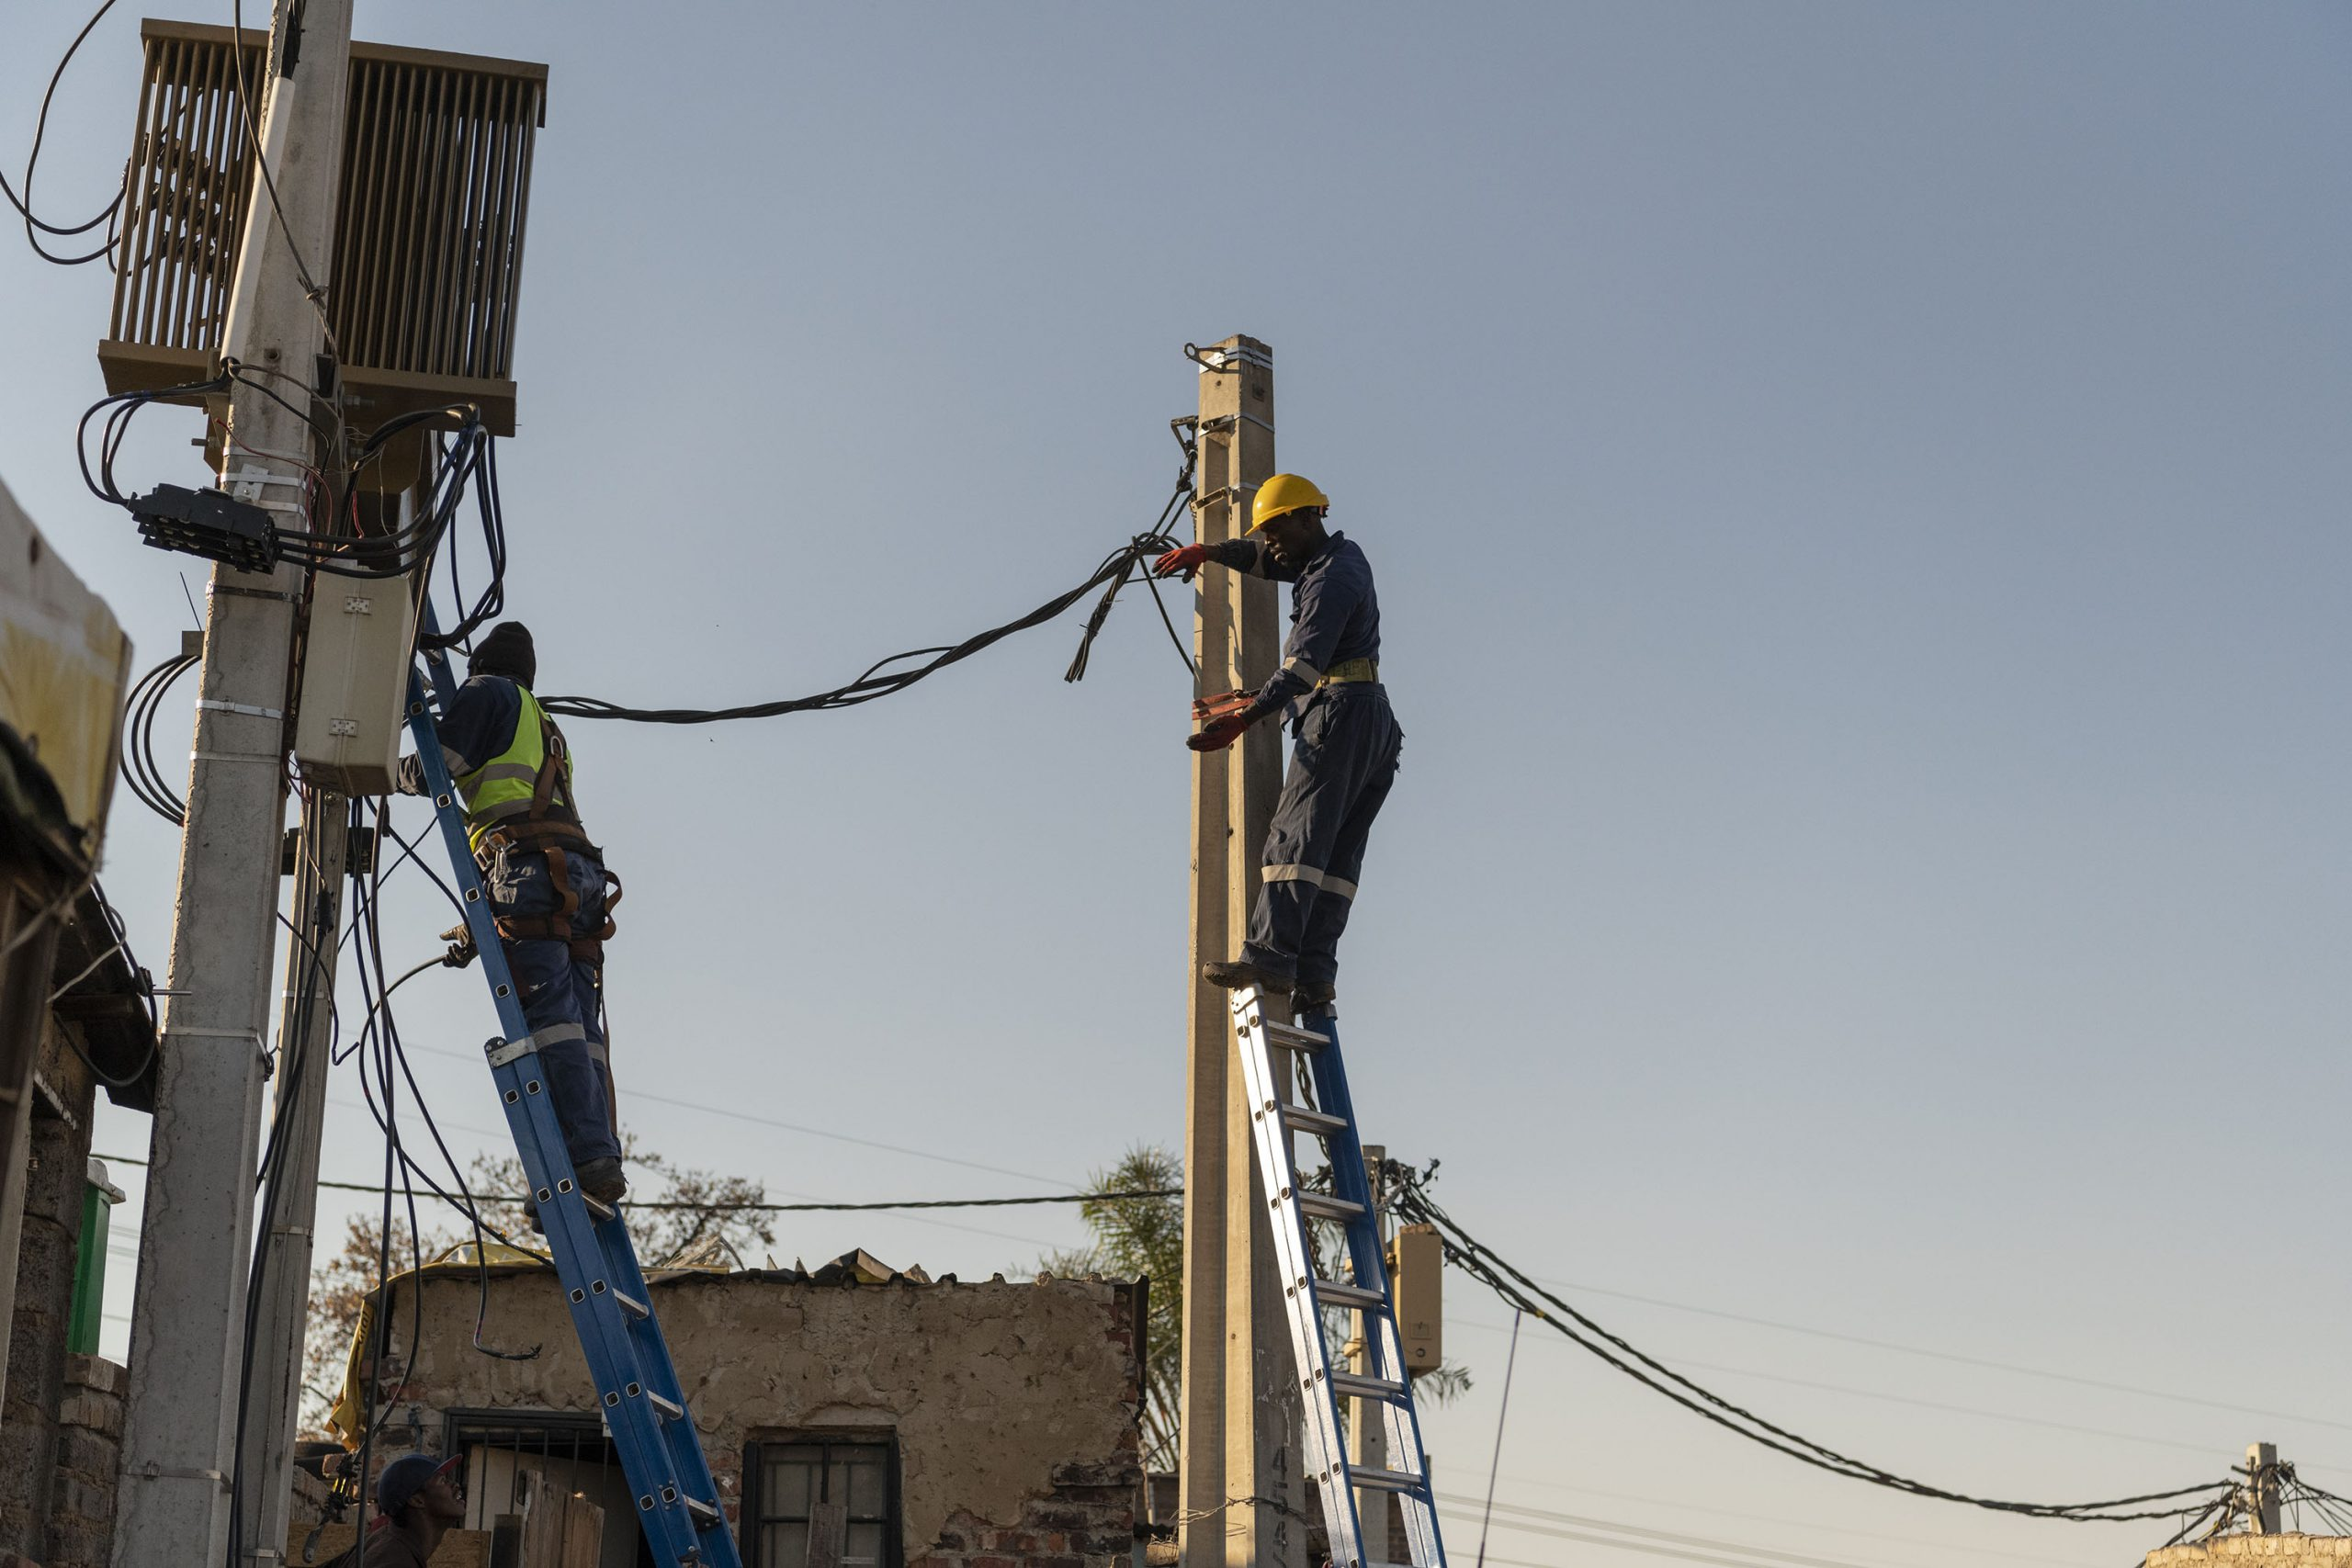 22 June 2020: City workers fix electricity pylons in the densely populated settlement of Stjwetla in Alexandra, Johannesburg. (Photograph by Ihsaan Haffejee)